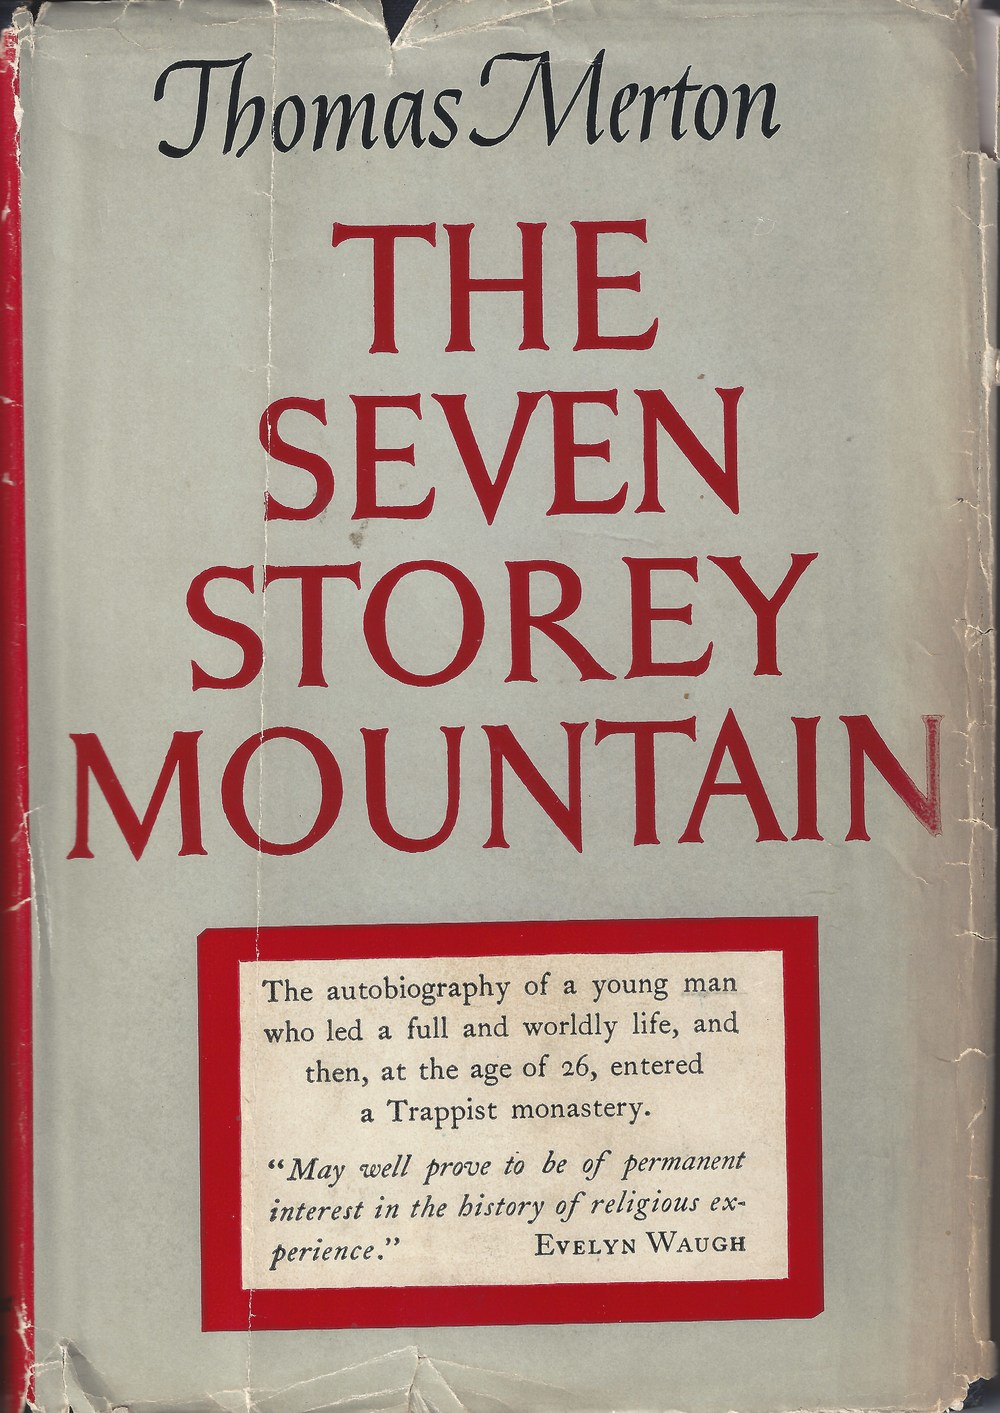 Jacket cover for 1st edition autobiography, 1948, published by Harcourt, Brace & Company